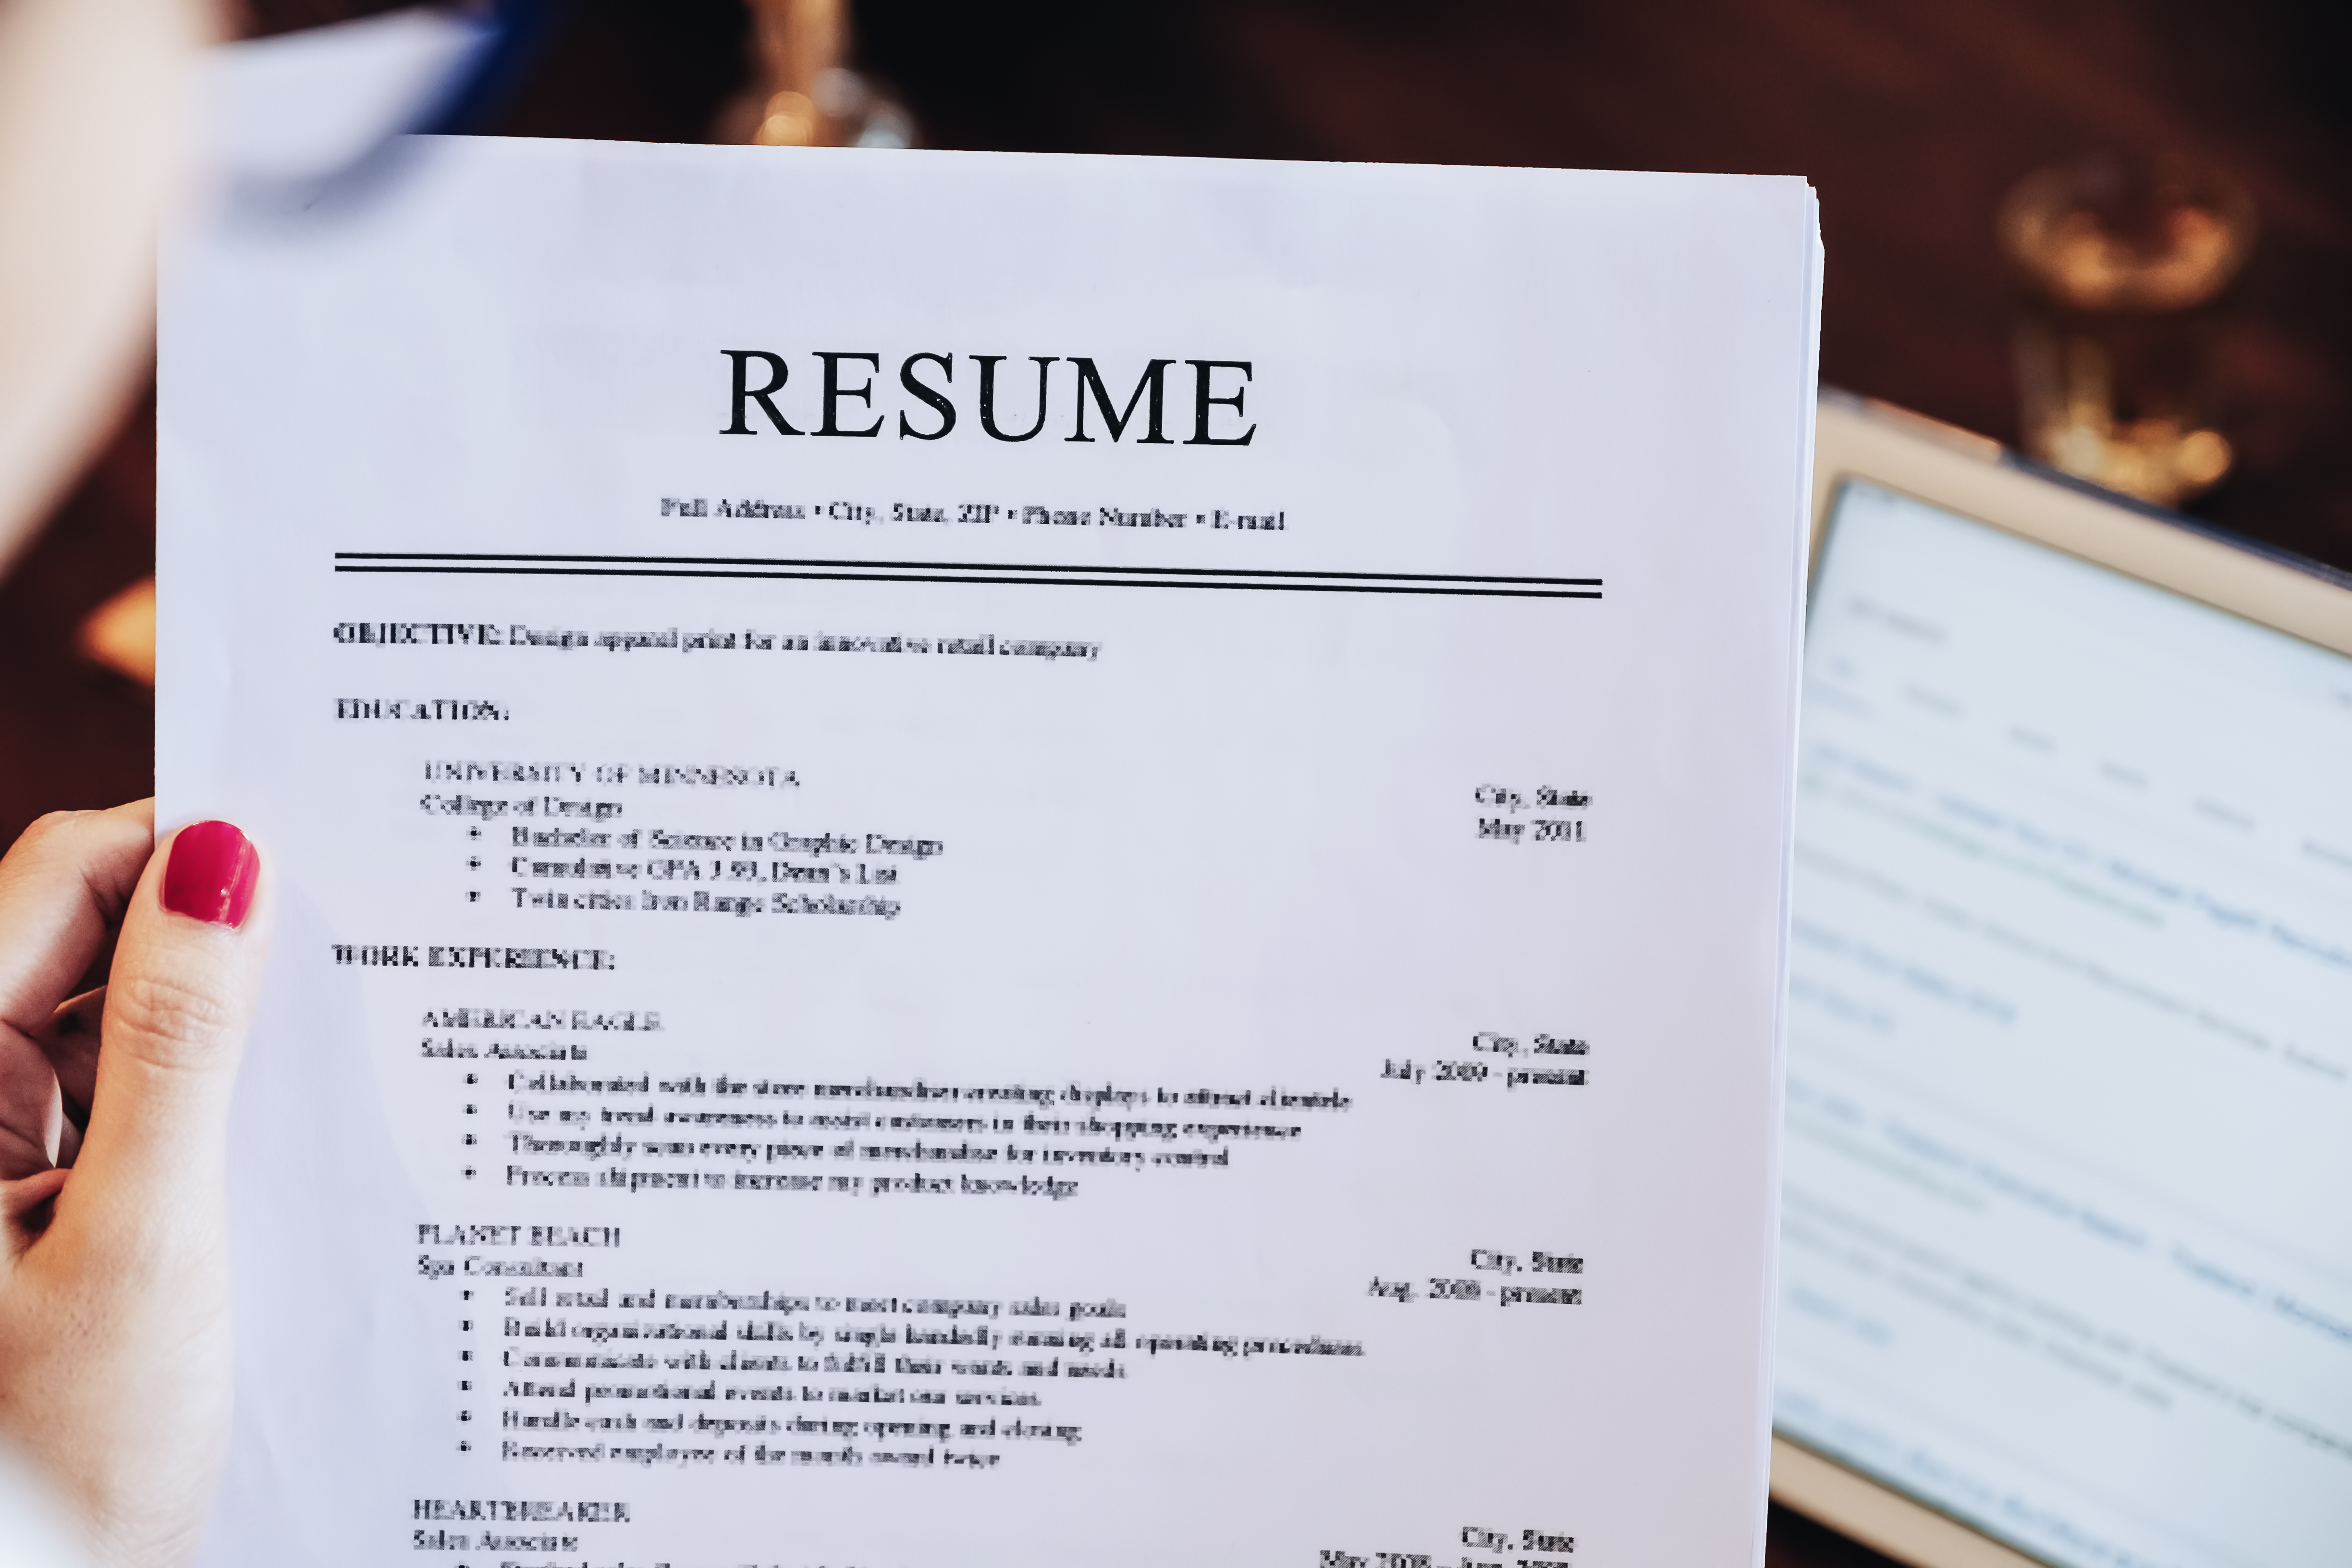 How To List Church Activities On Resumes